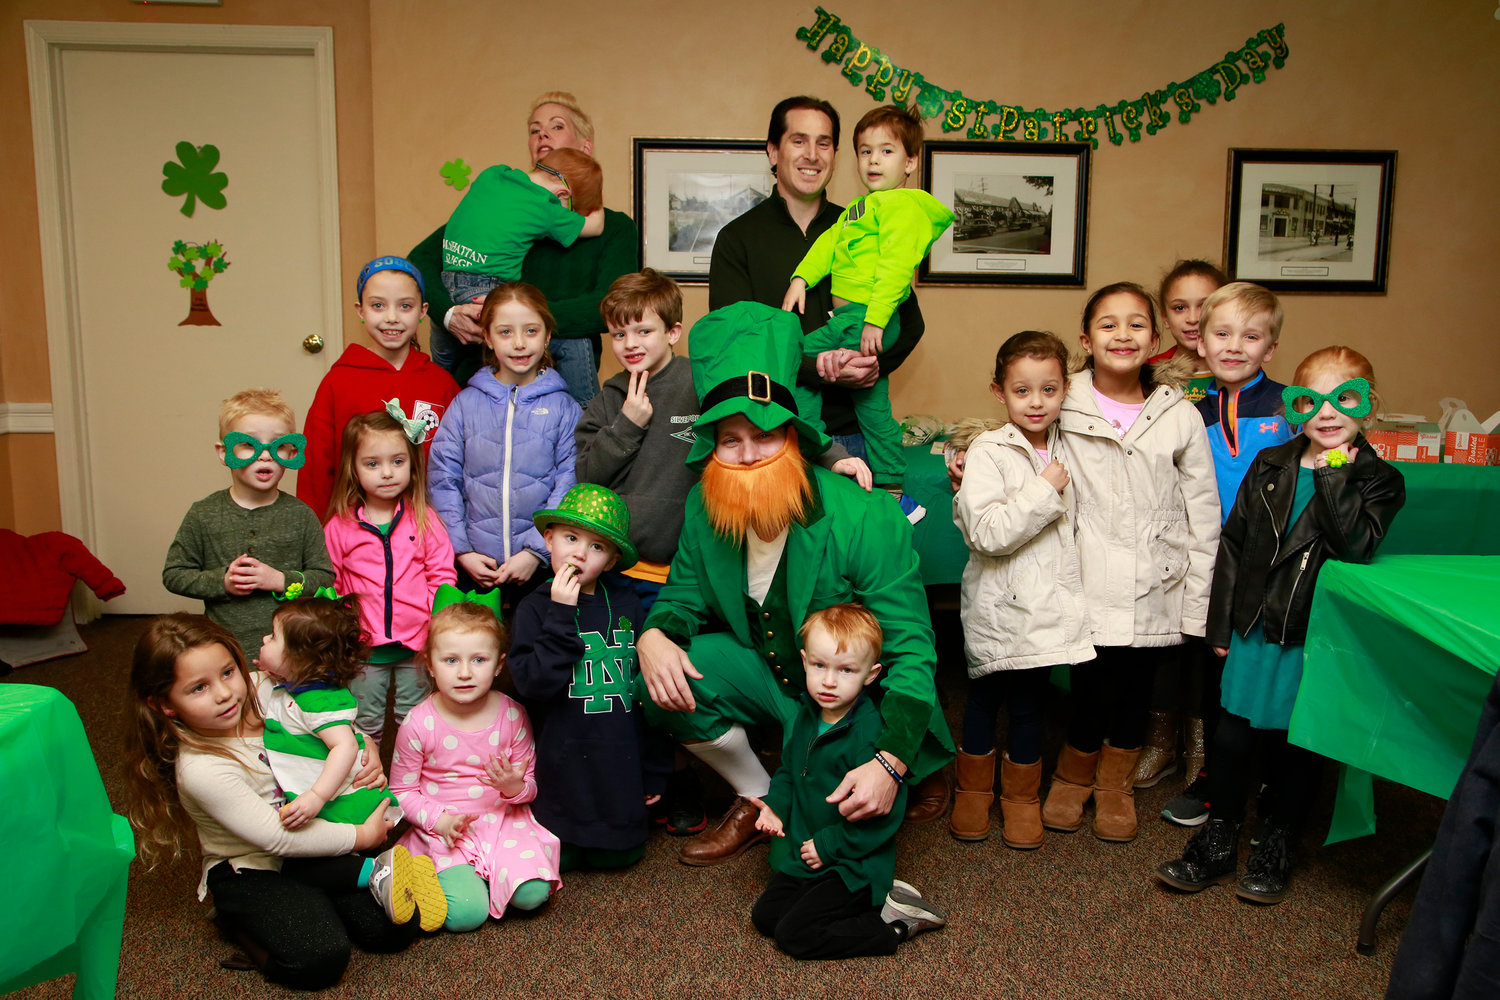 Parents and children posed with the Leprechaun during Malverne Youth Board's St. Patrick's Day Party.